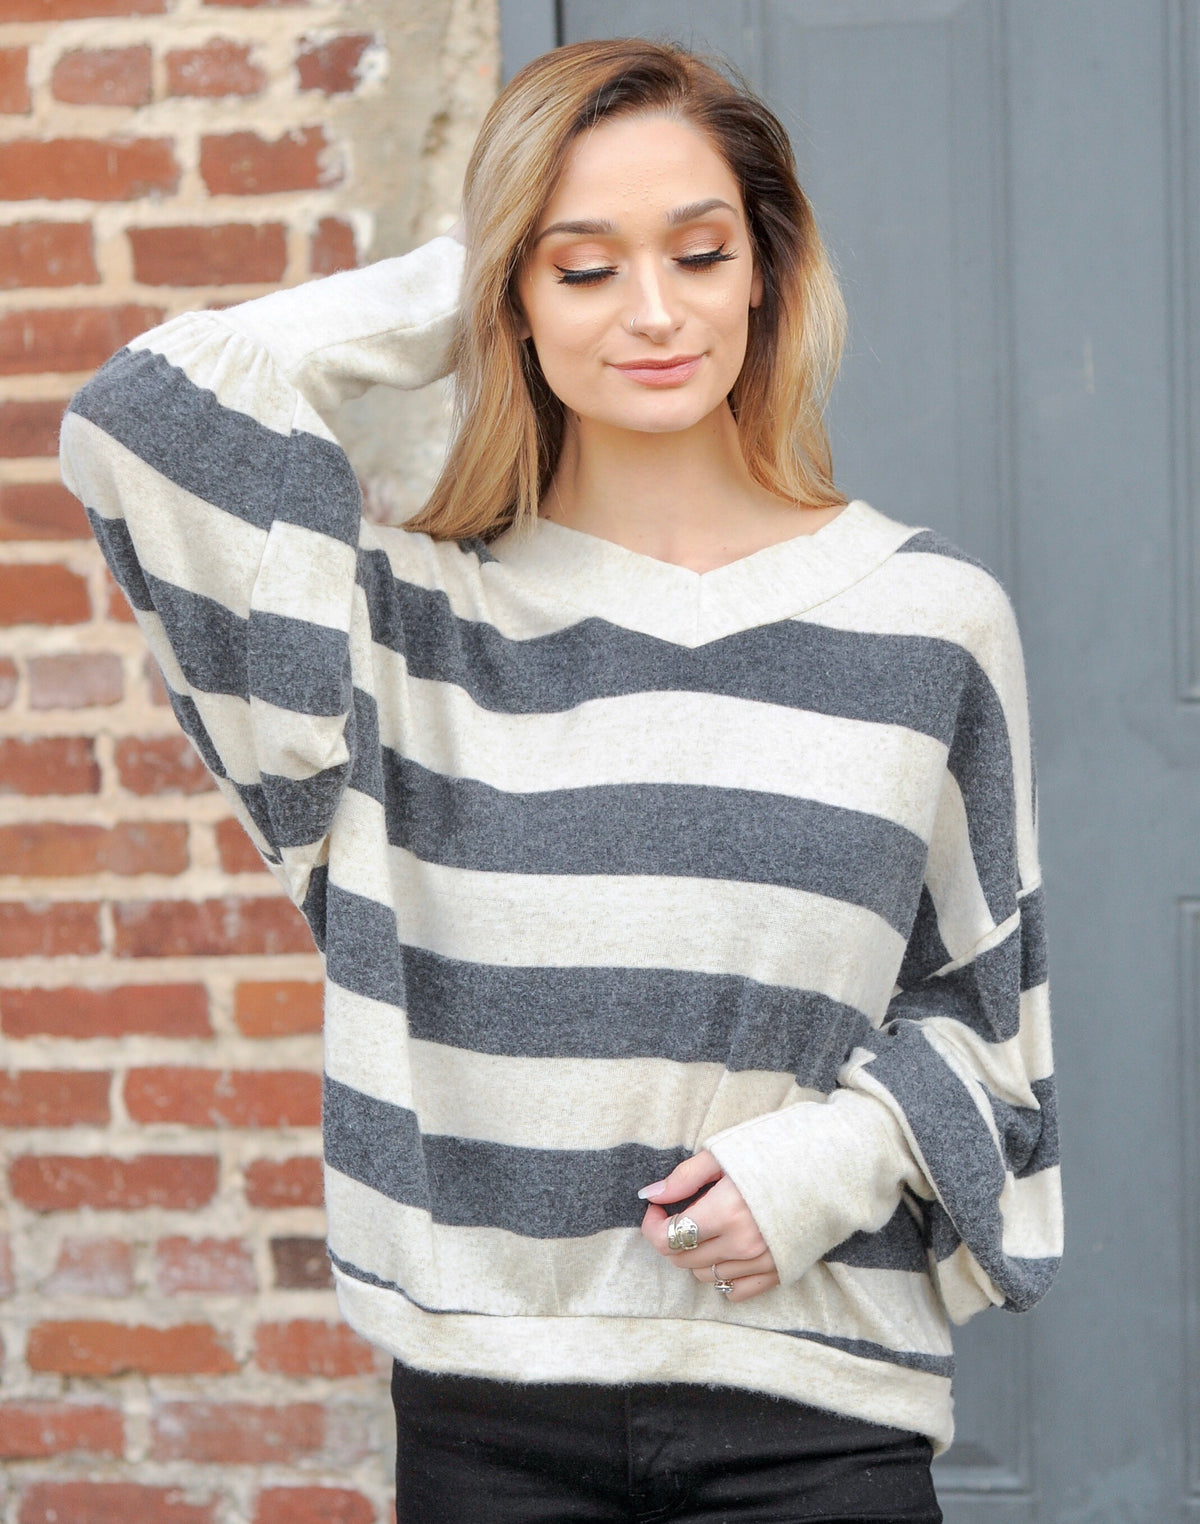 Oatmeal/Charcoal Striped Sweater